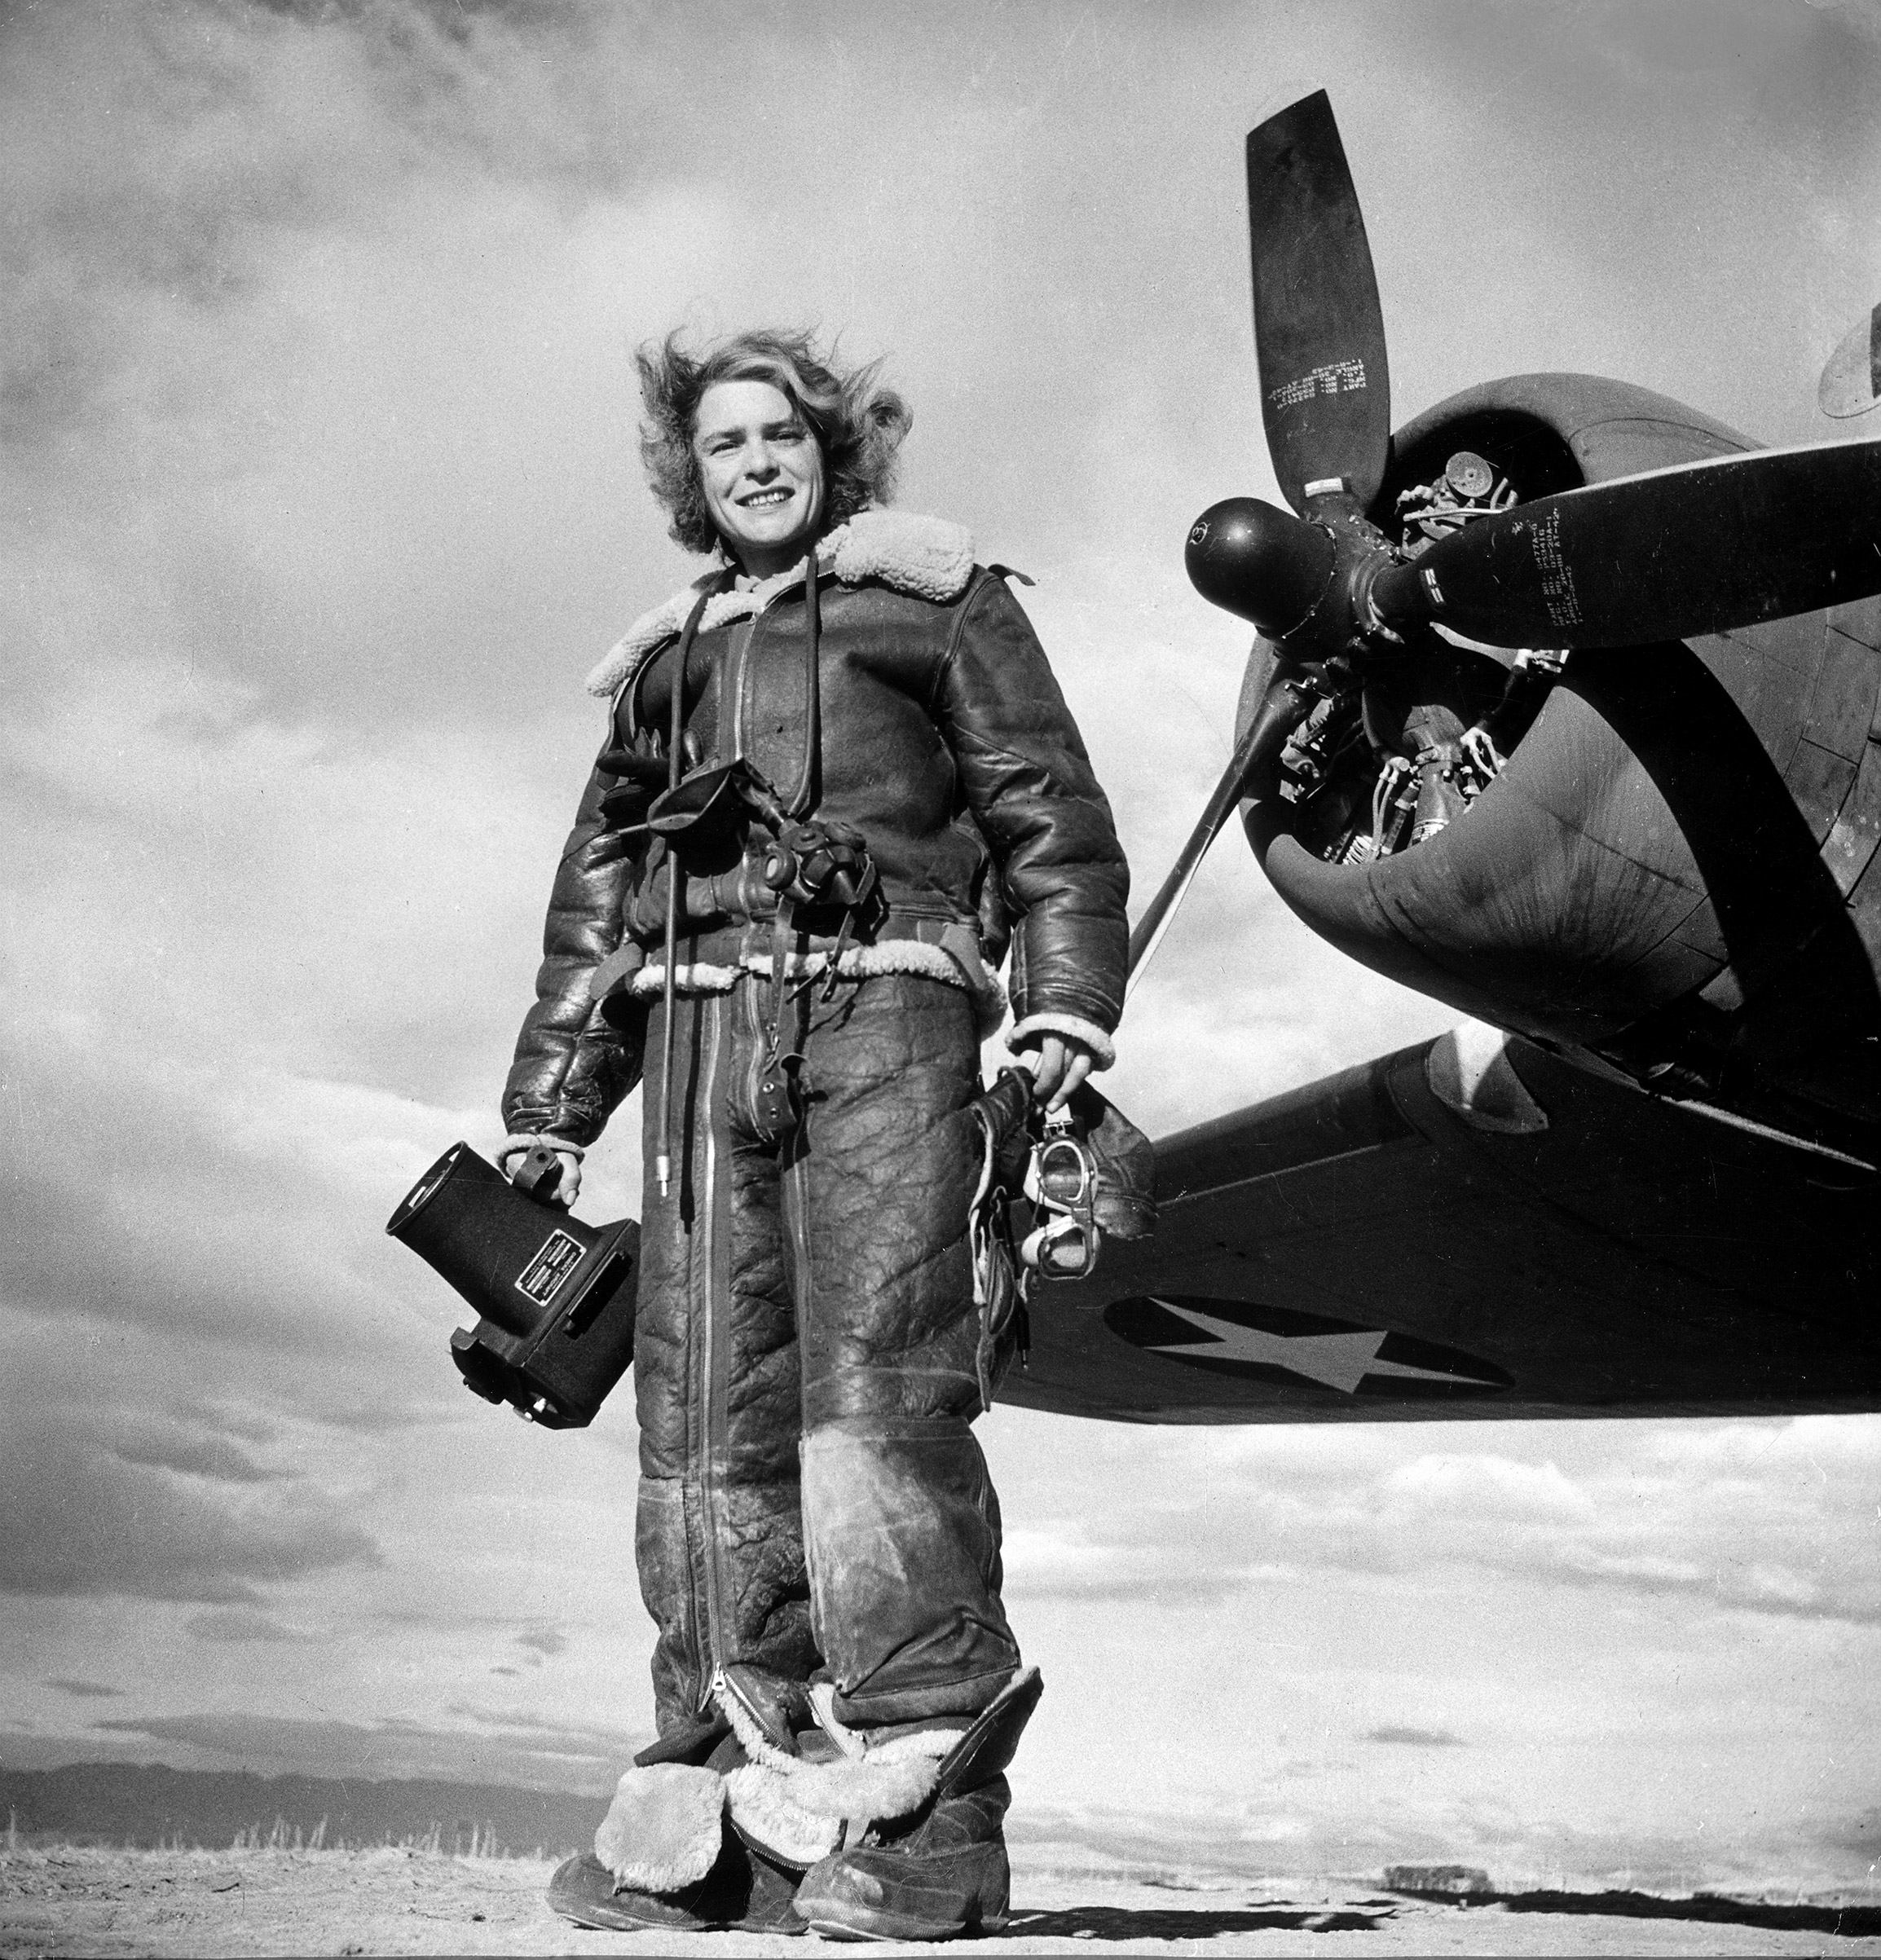 MARGARET BOURKE-WHITE became the first female photographer accredited to cover World War II combat zones in 1942.